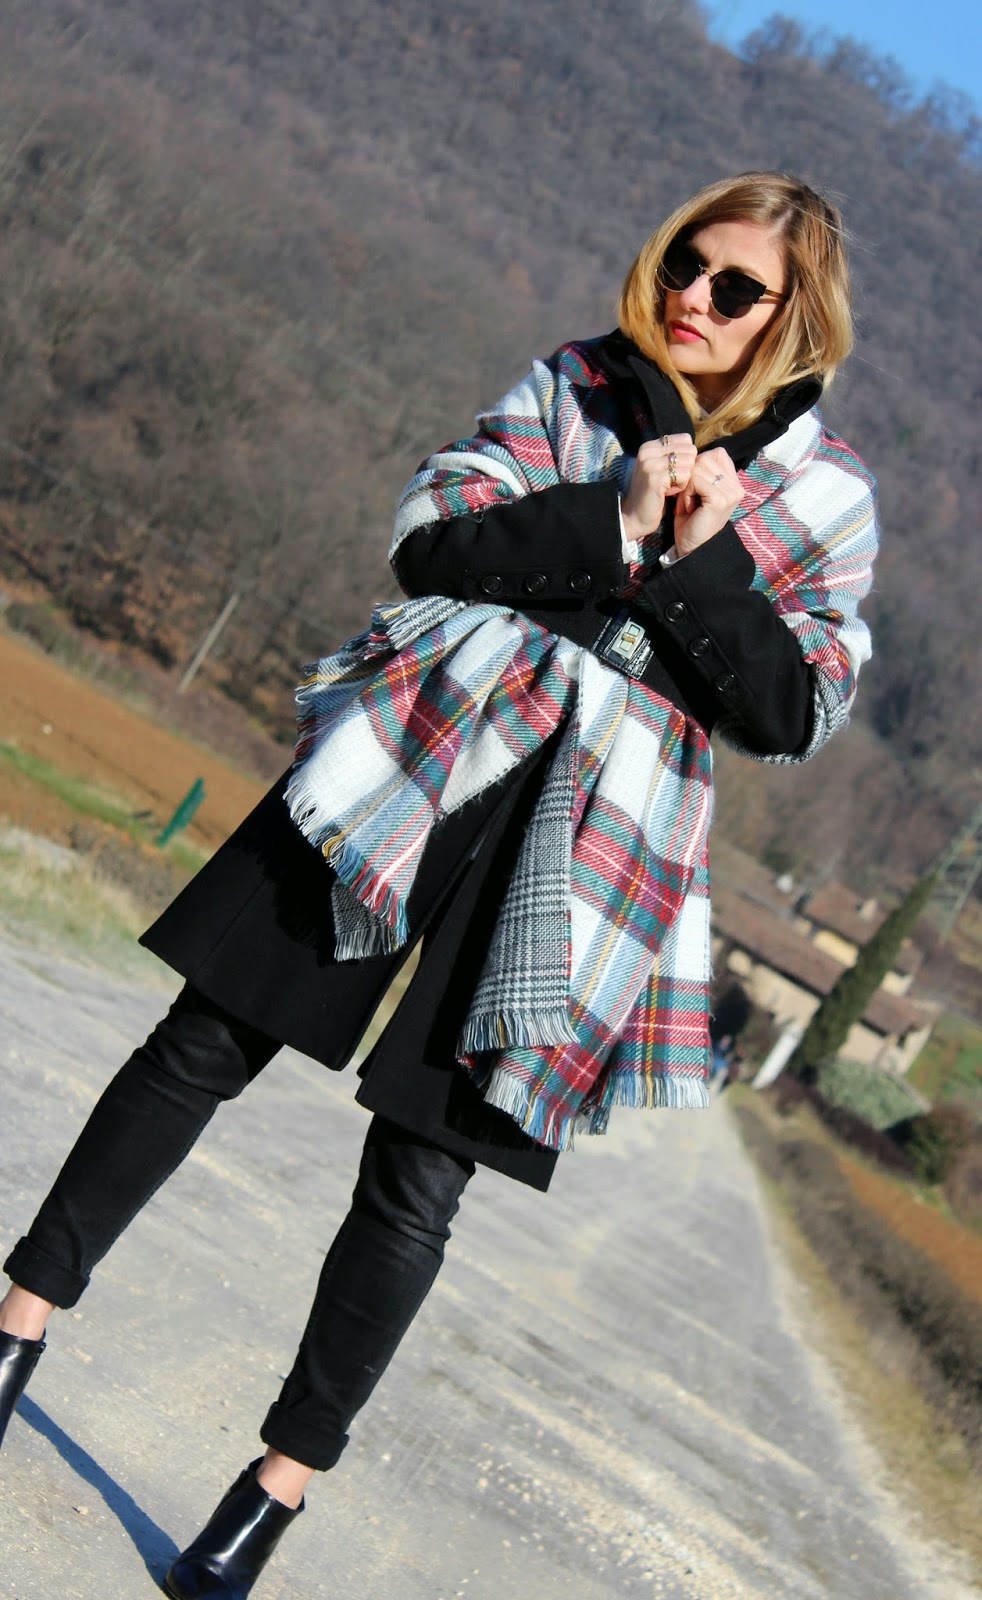 Eniwhere Fashion - Totally casual black outfit and maxi scarf